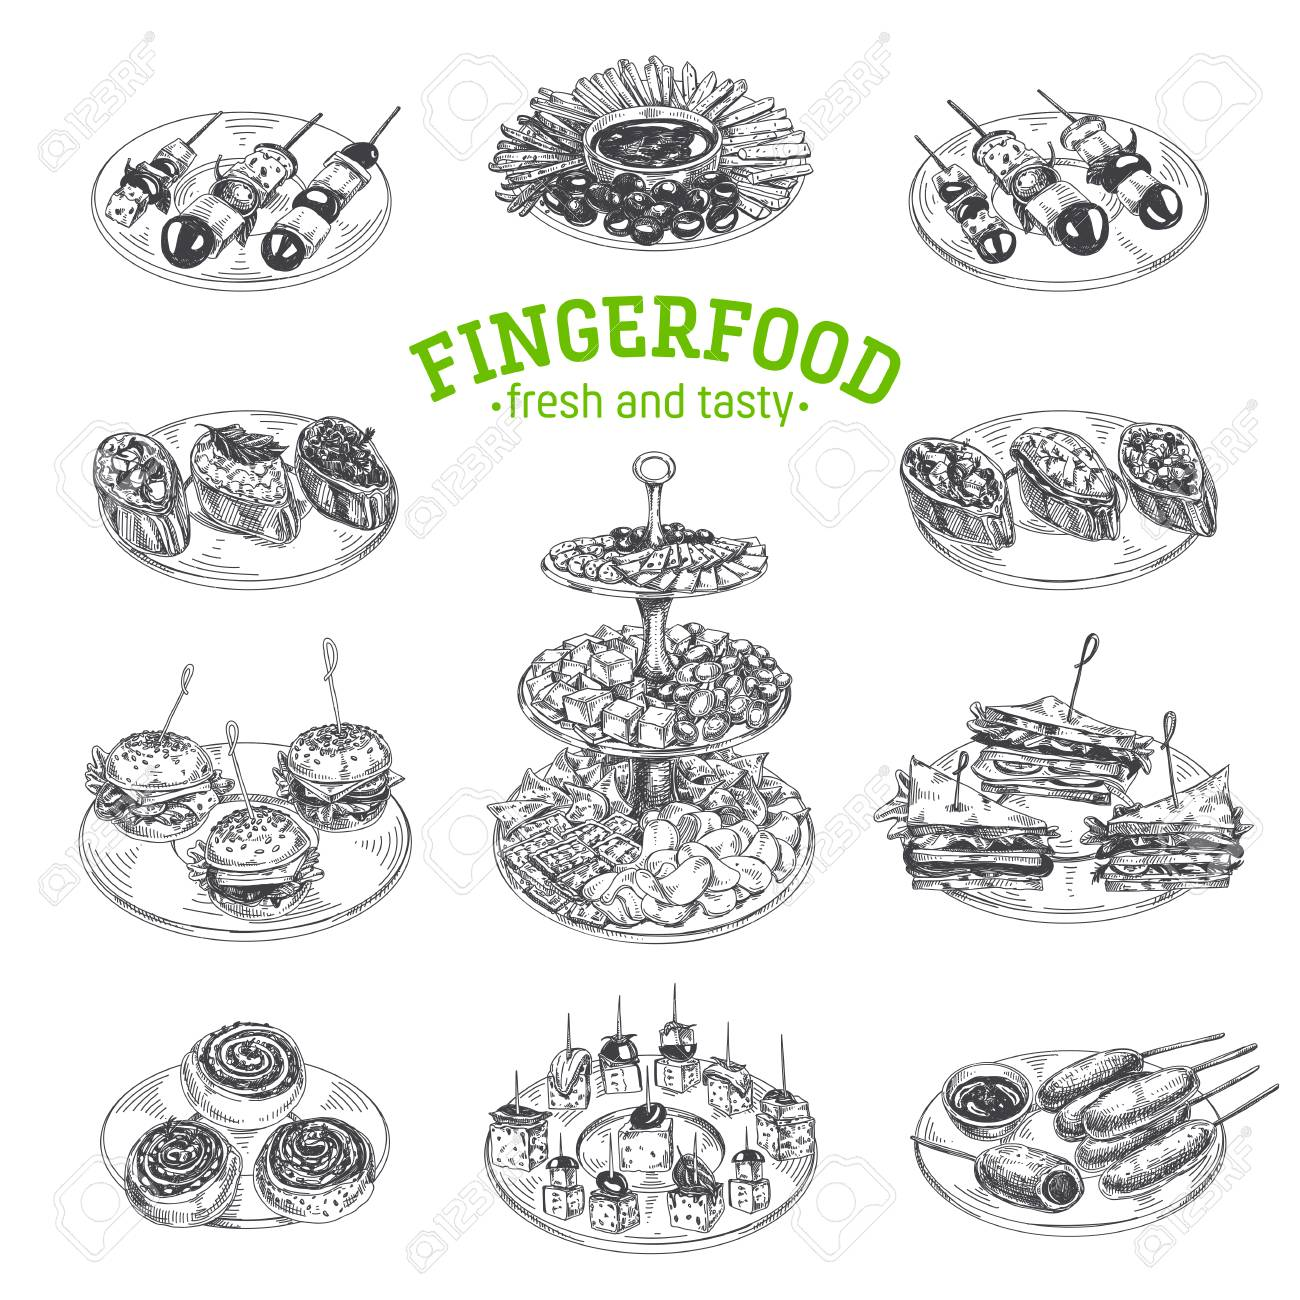 Beautiful vector hand drawn finger food Illustrations. Detailed retro style images. Vintage sketch elements for labels, packaging and cards design. Modern background. - 104284330